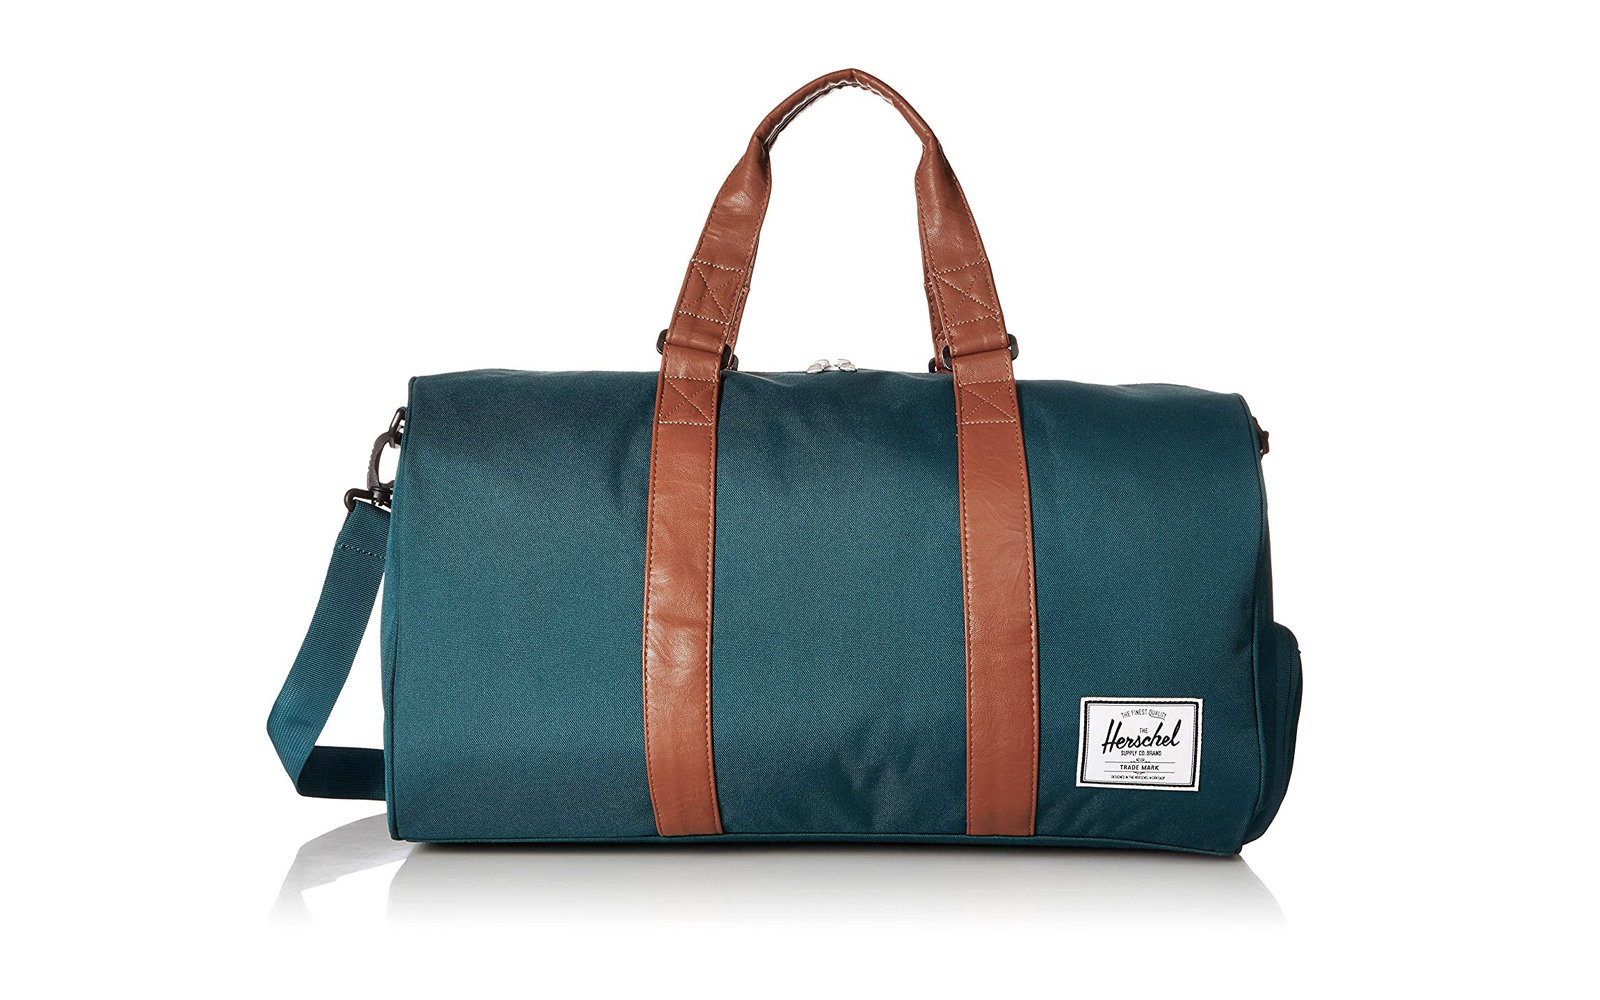 13858e8ead Novel Duffel Bag. herschel weekender